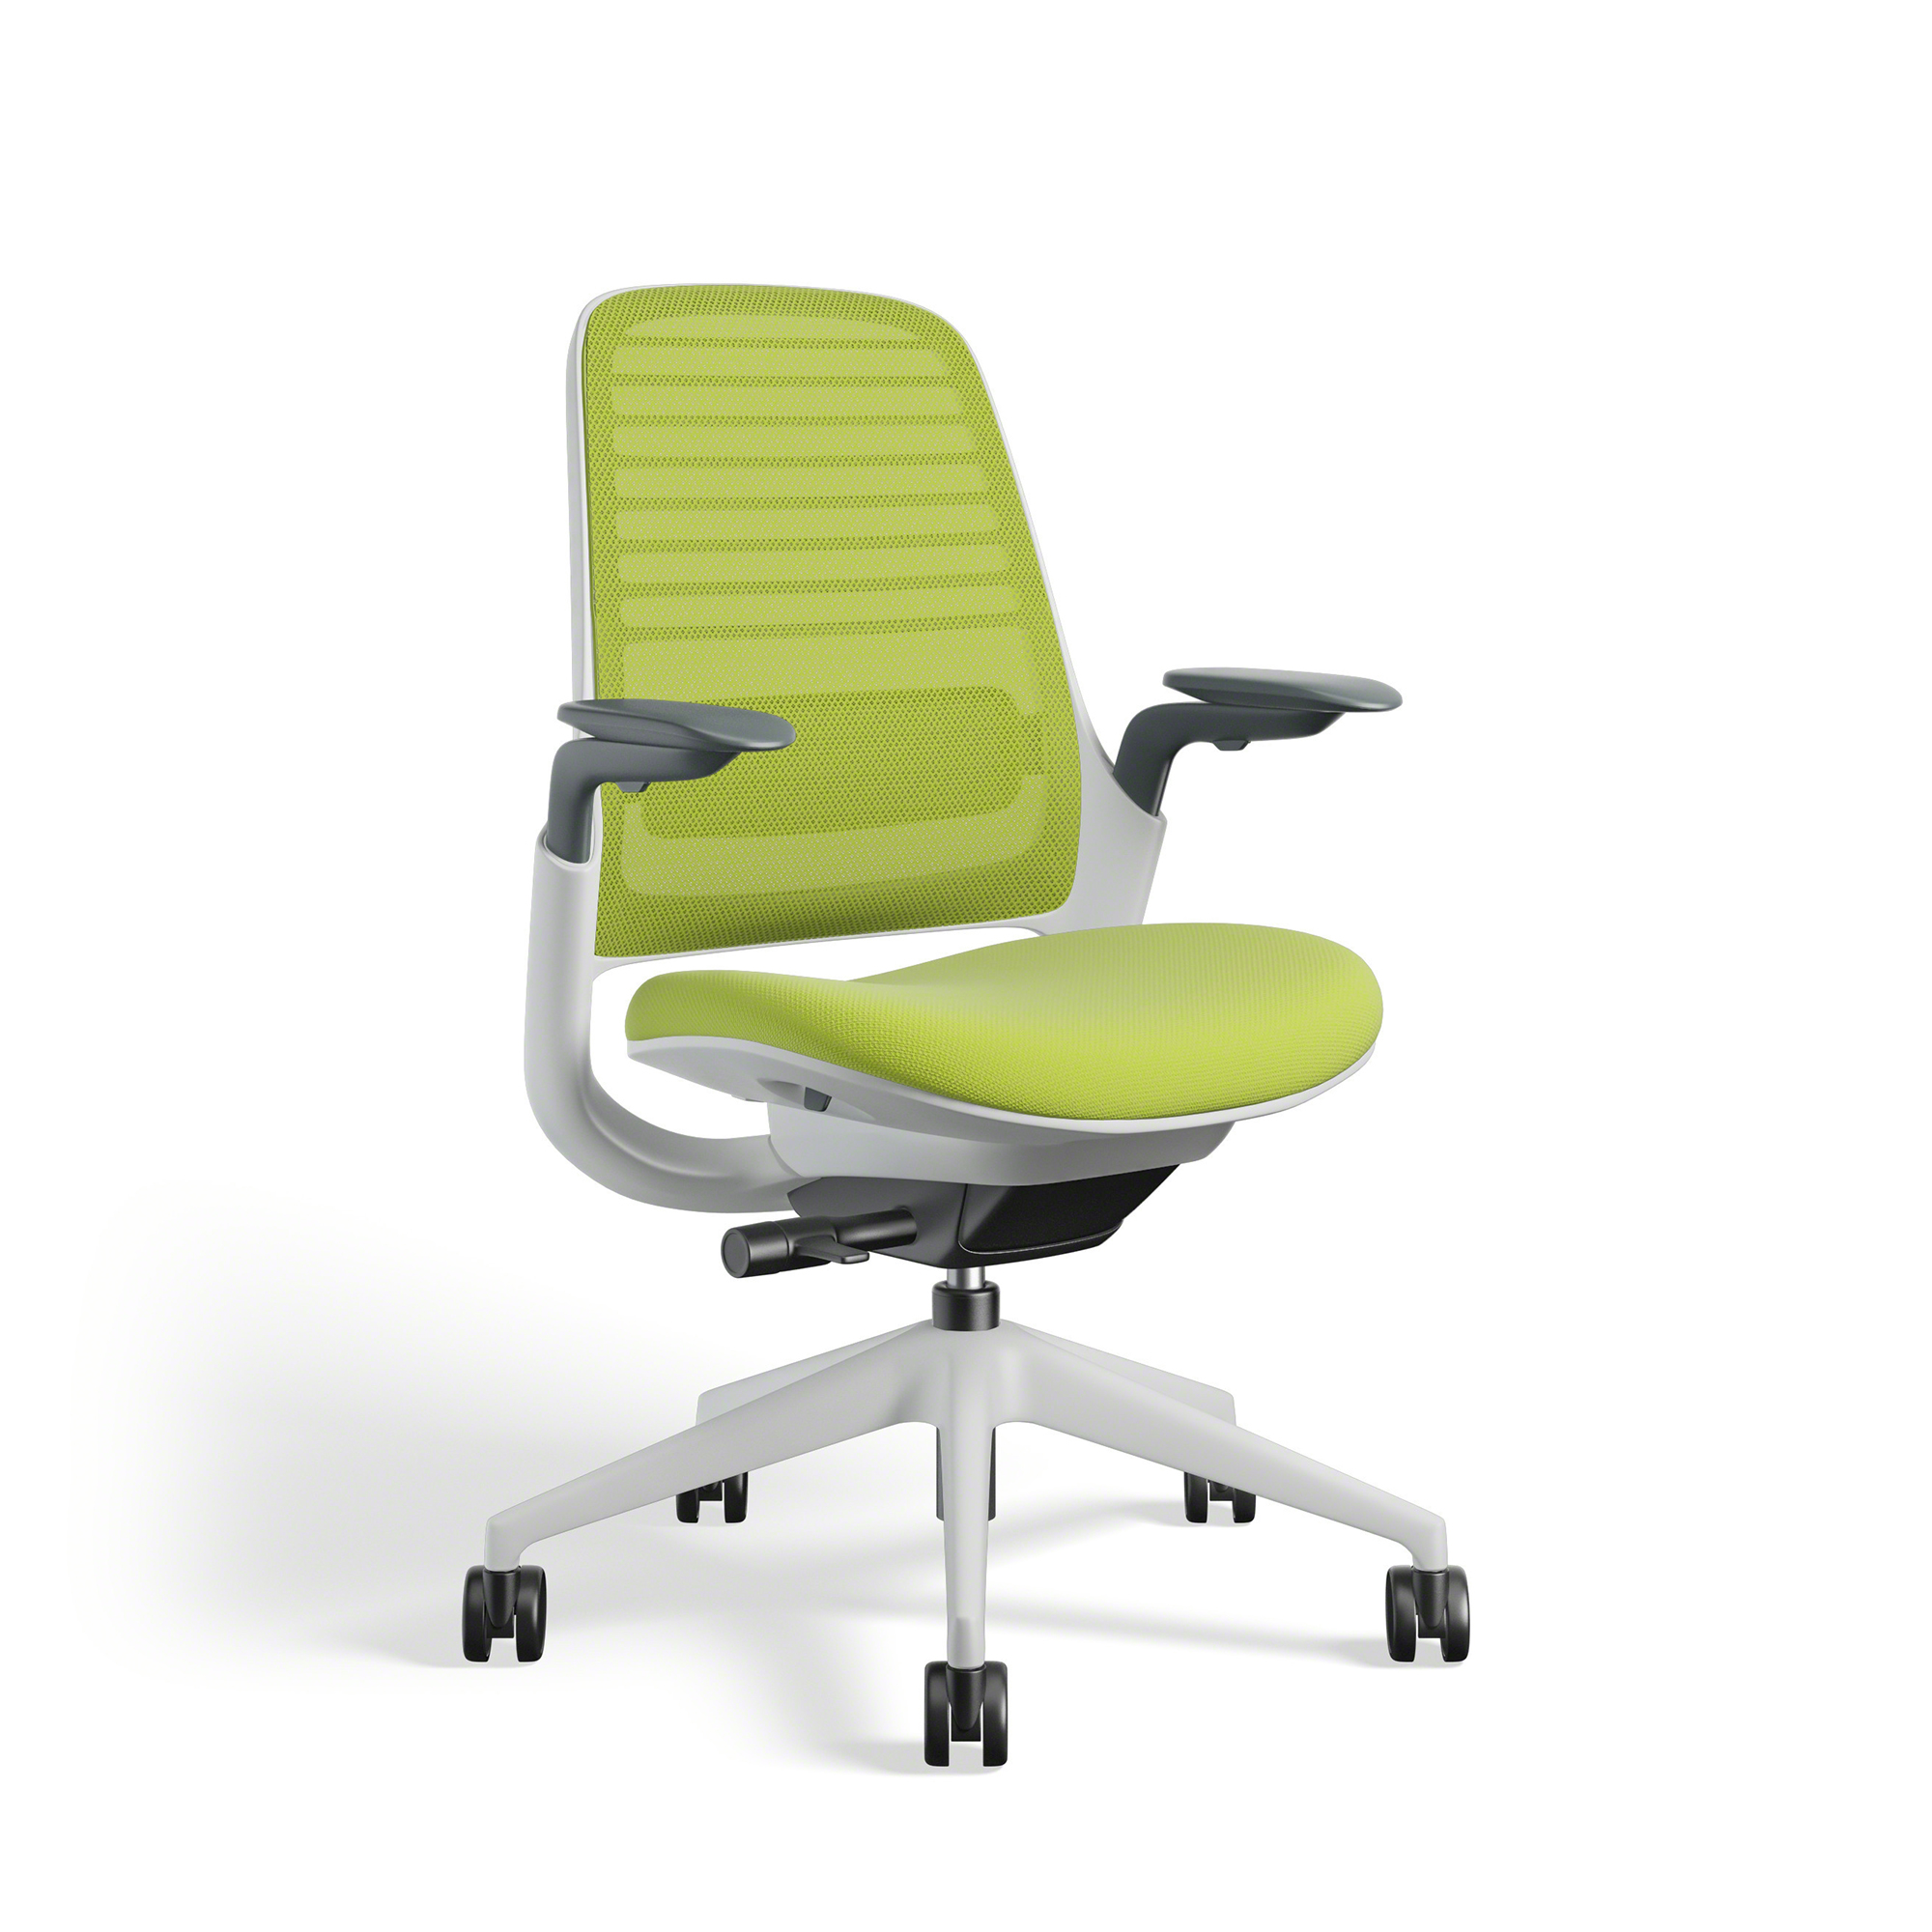 Lime Green Chairs Lime Green Steelcase Series 1 Chair White Frame Office Furniture Poppin